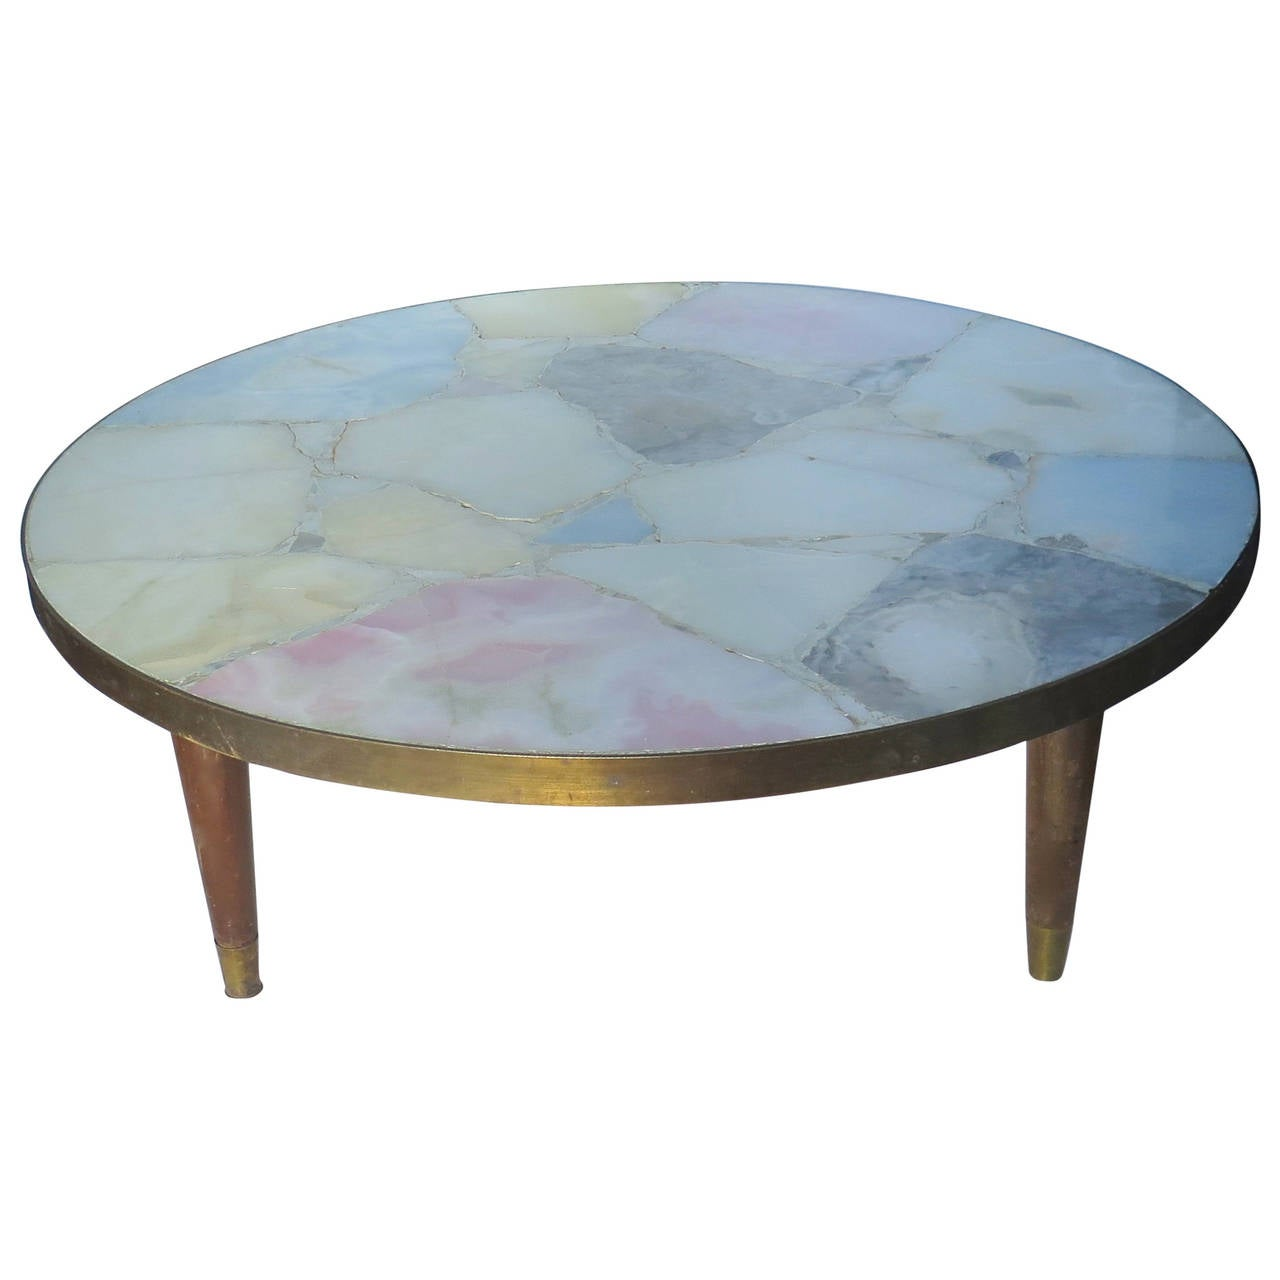 Stone brass modernist round coffee table attributed to arturo pani mexico at 1stdibs Brass round coffee table